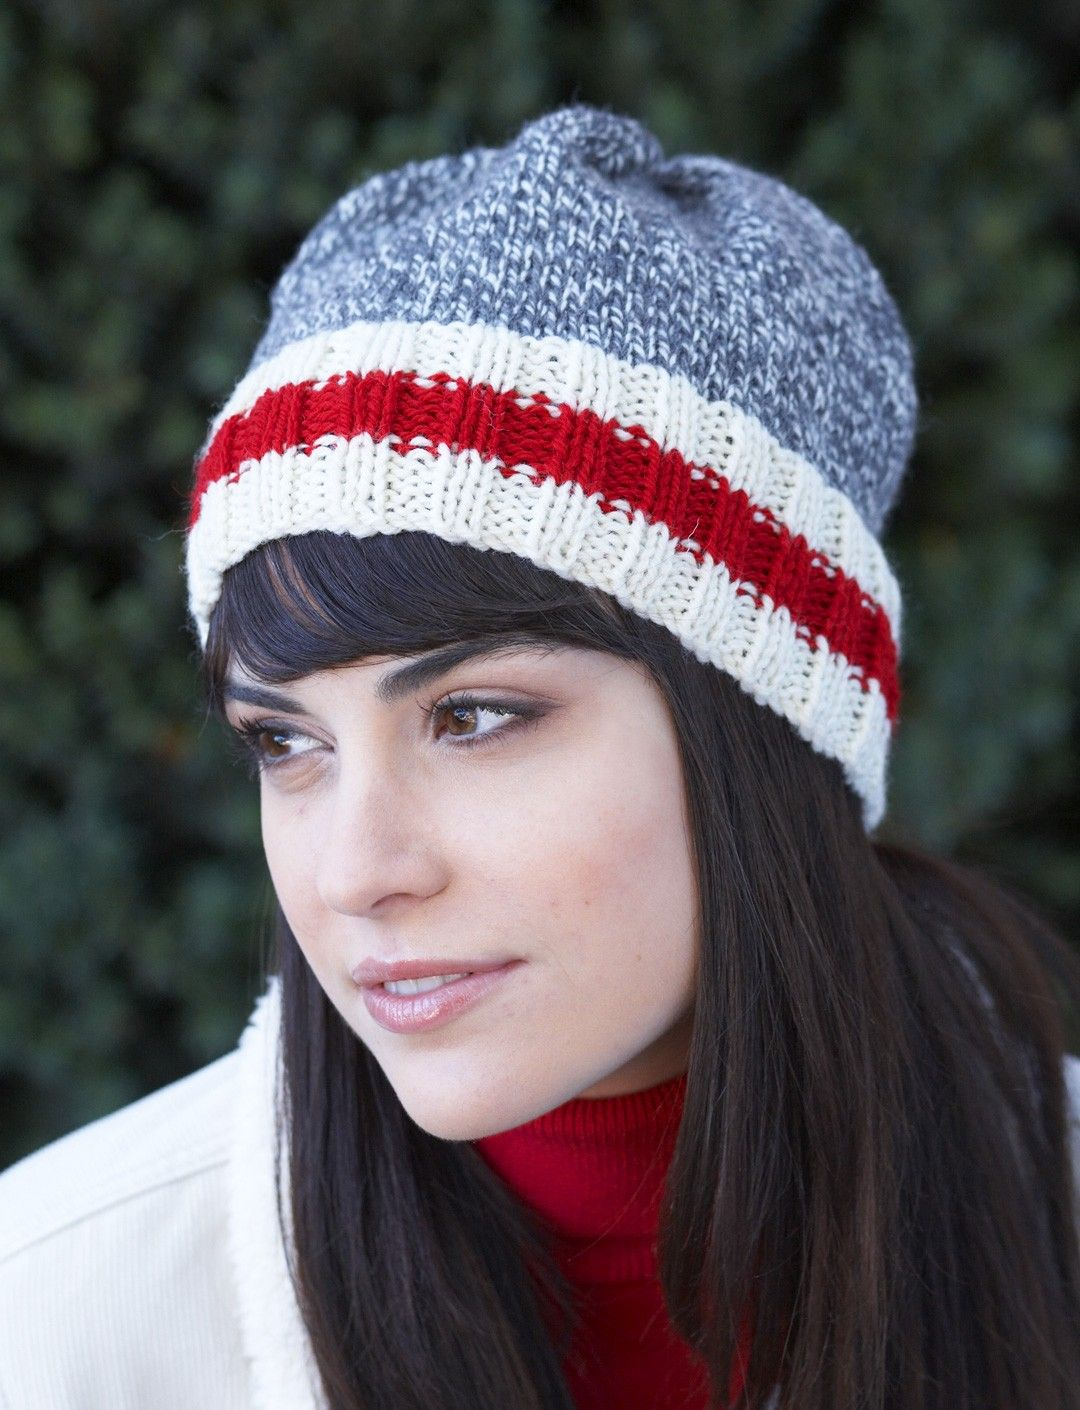 Work sock hat tuque bas de laine pinterest work socks socks free pattern the classic marl and stripes look makes for a cozy knit hat with a subtle splash of color in patons classic wool worsted bankloansurffo Gallery